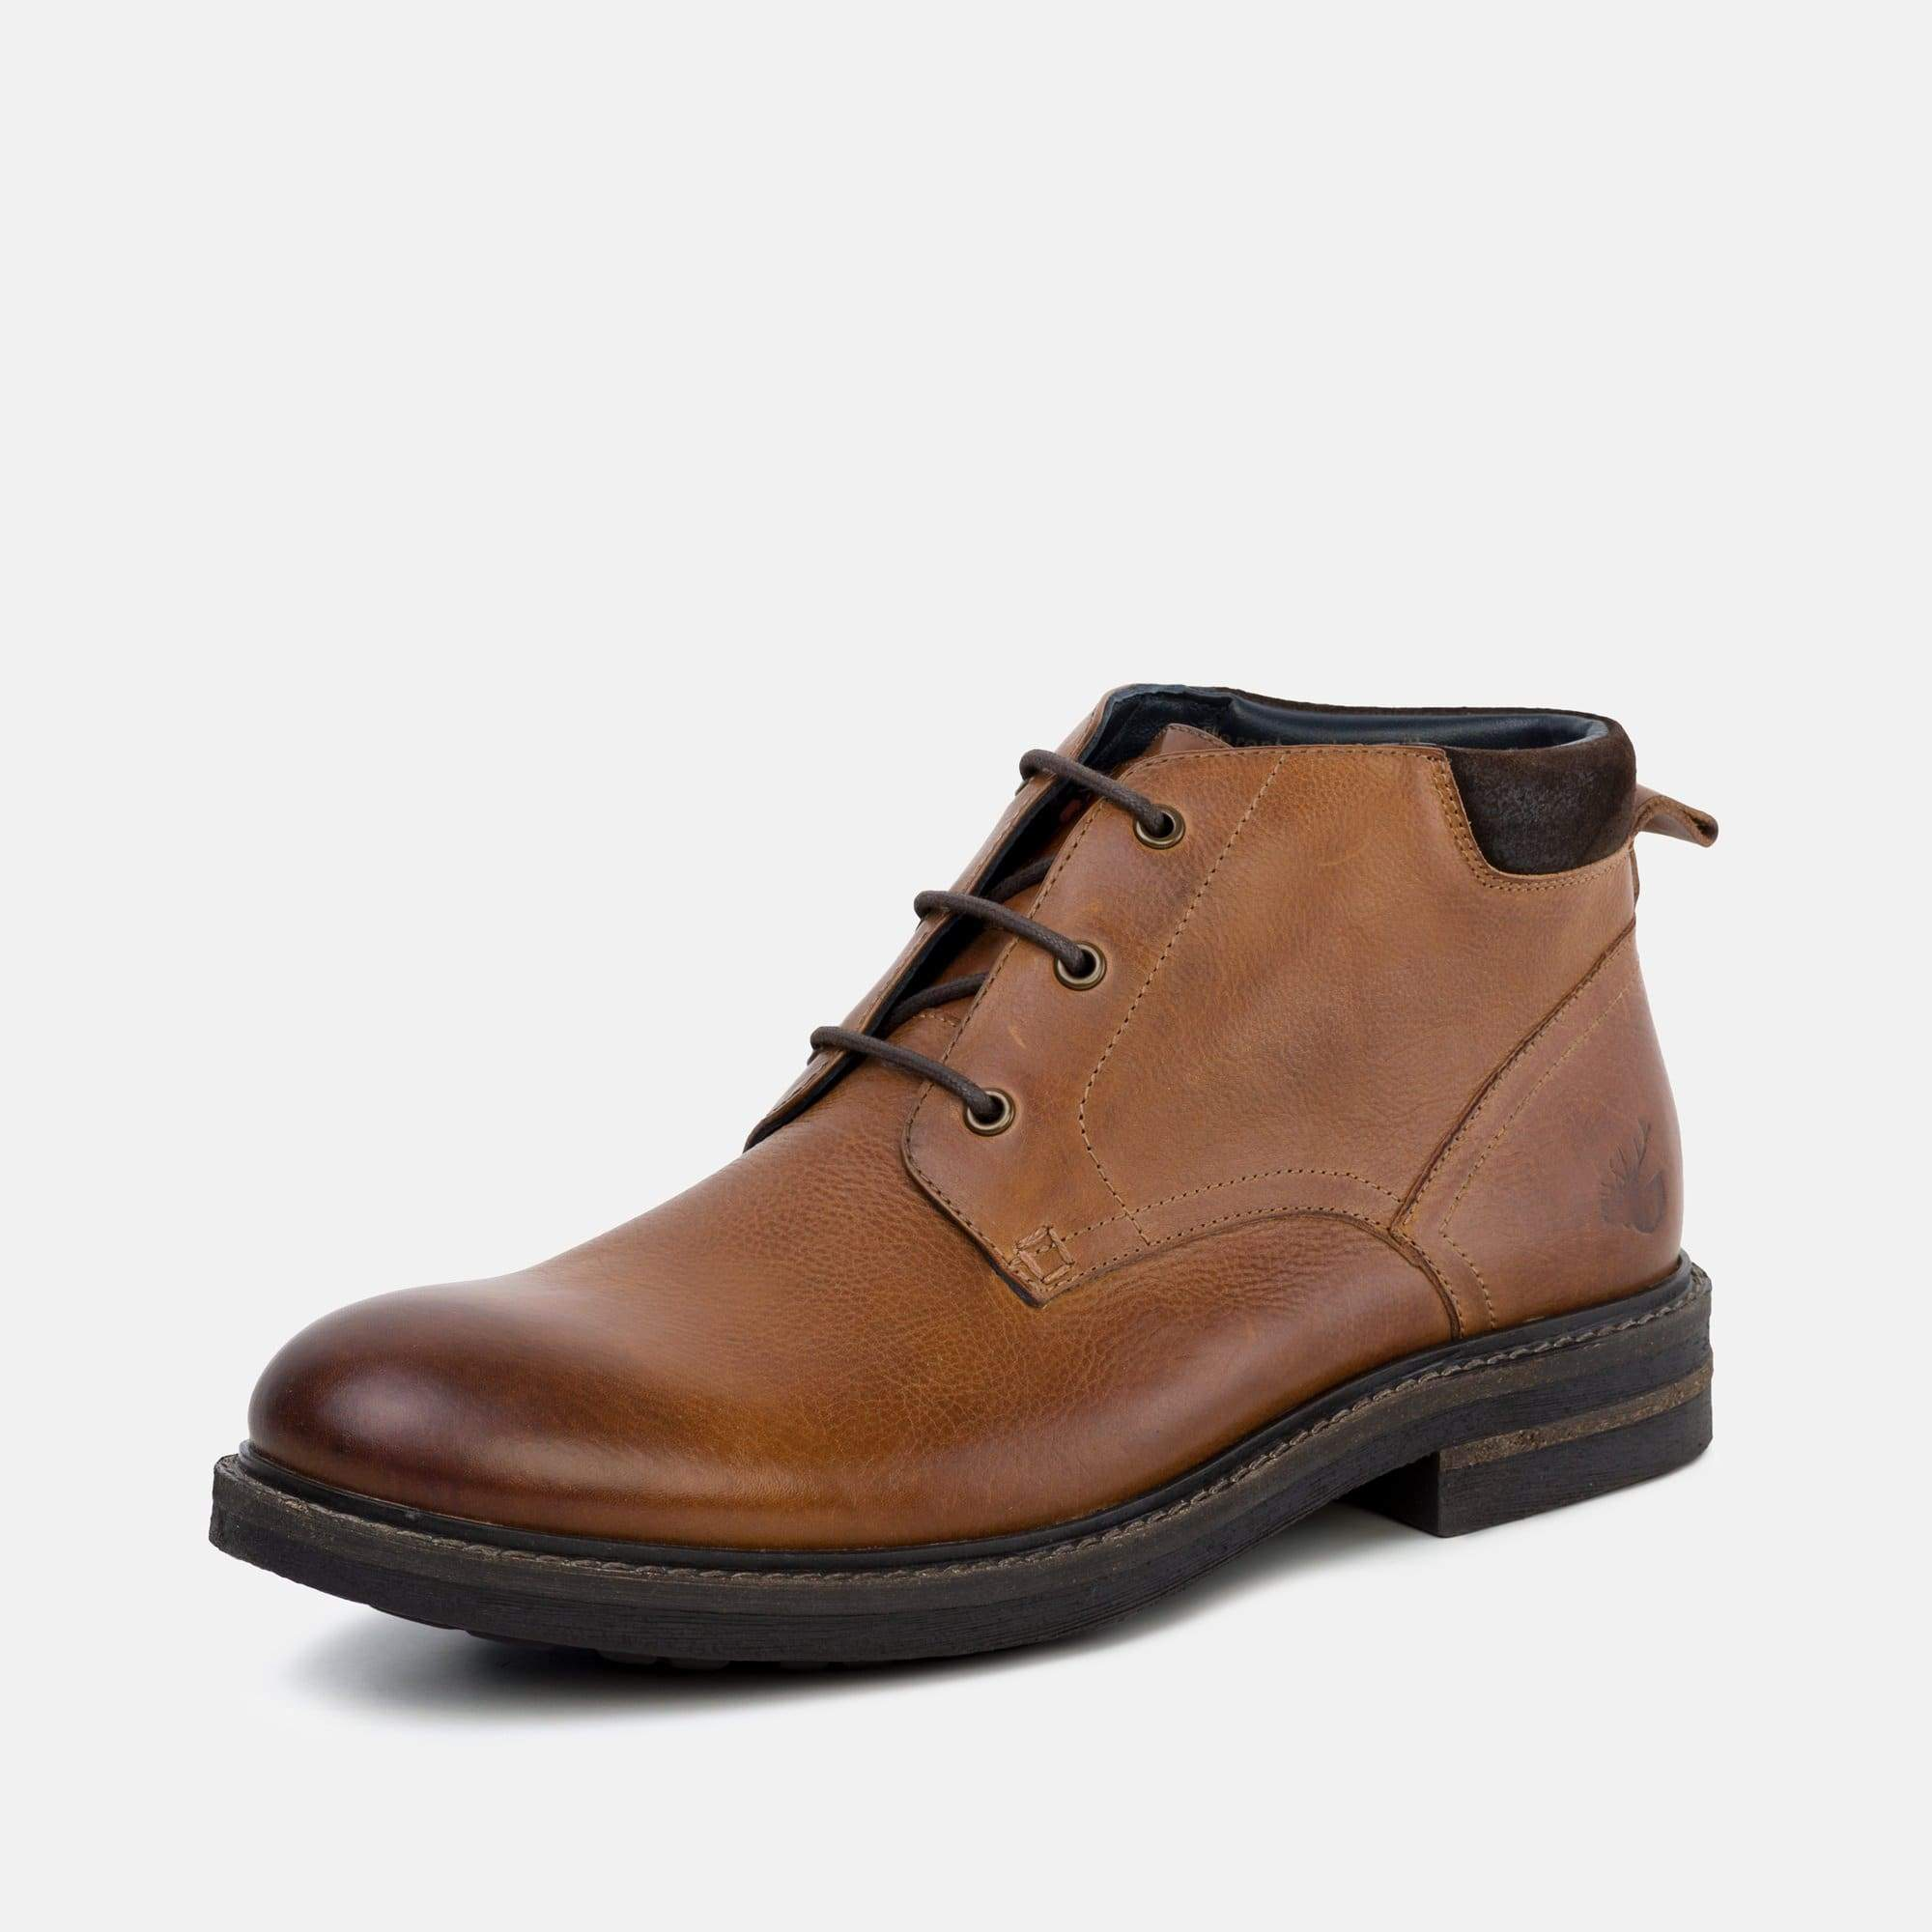 Goodwin Smith Footwear Regis Tan Classic Leather Chukka Boot